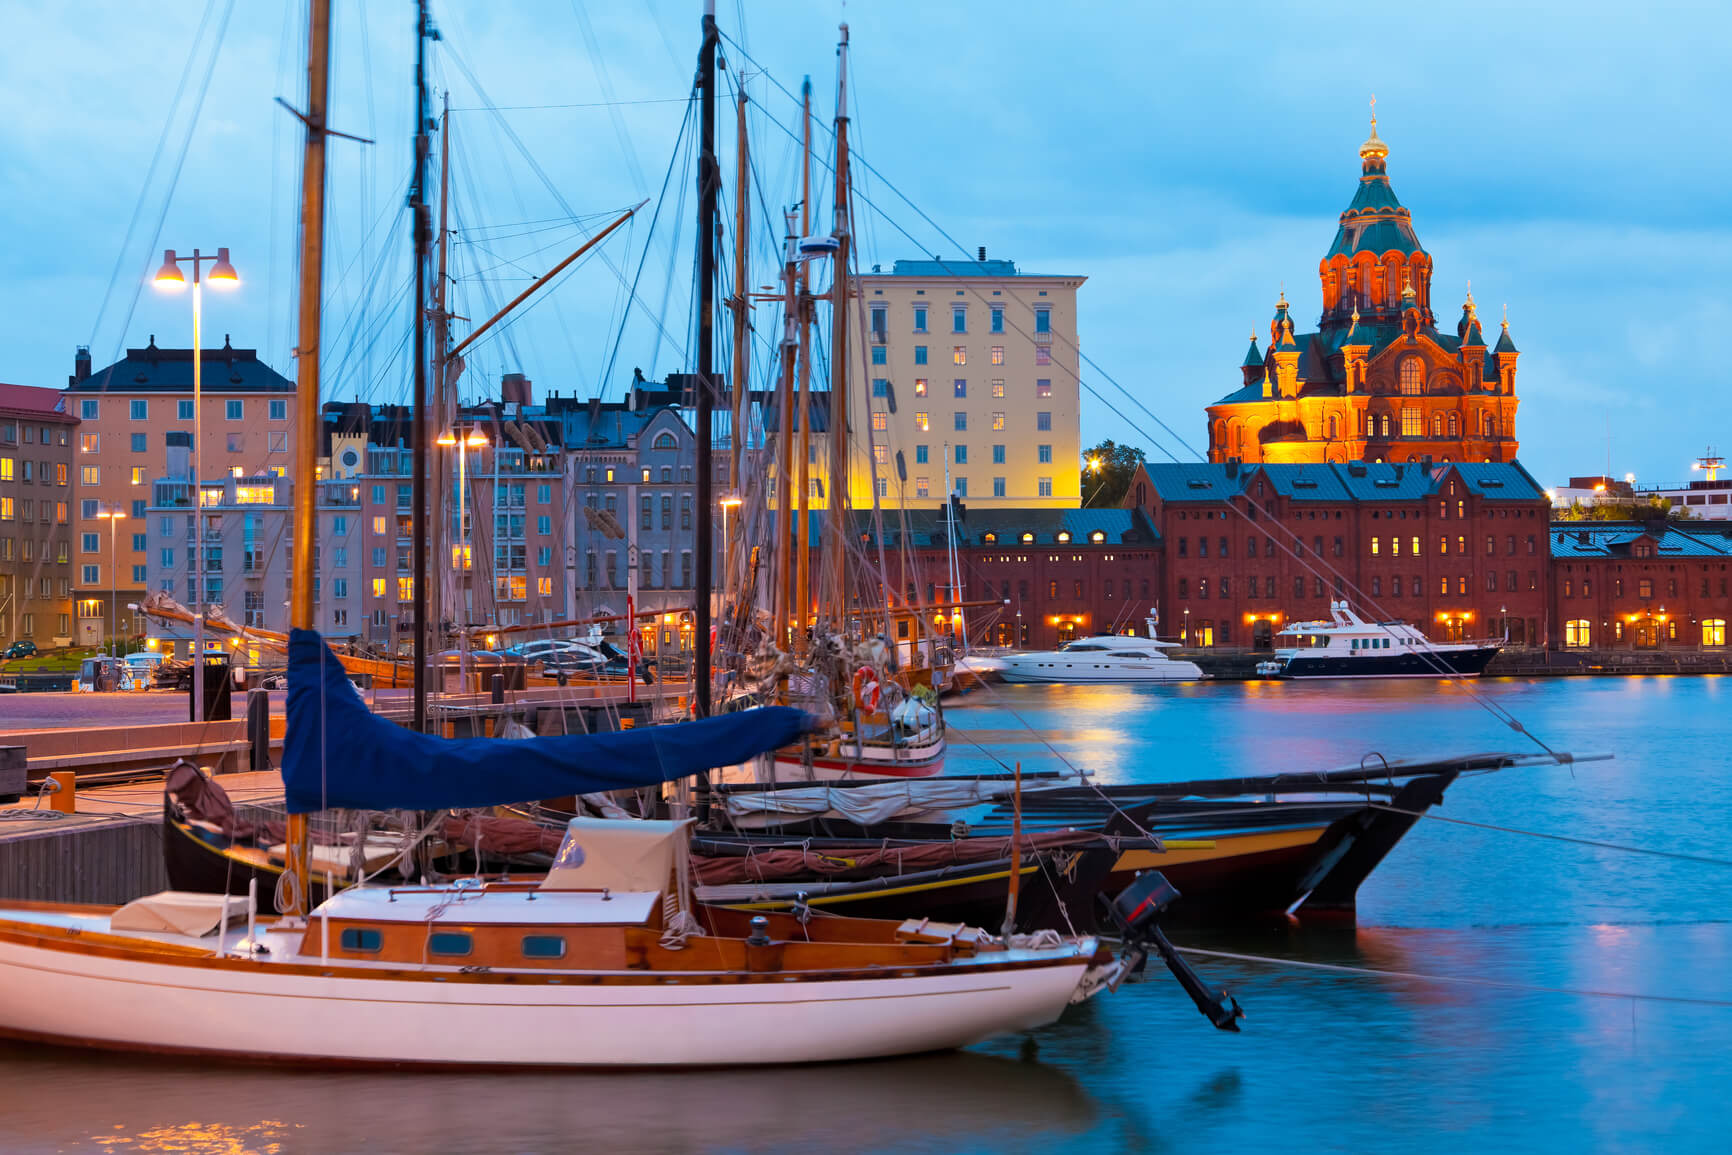 Los Angeles to Helsinki, Finland for only $431 roundtrip